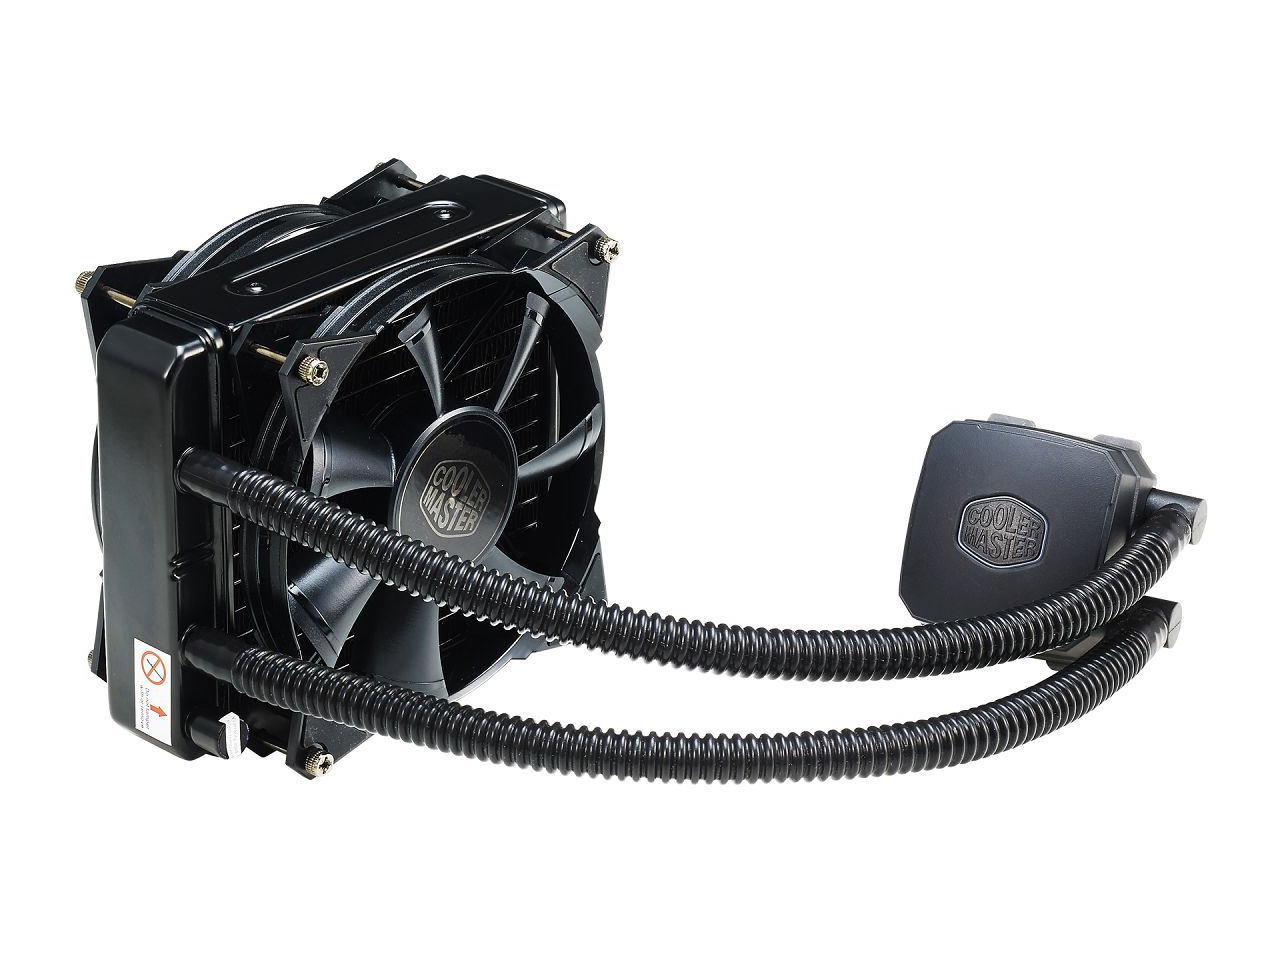 Coolermaster RL-N14X-20PK-R1 Nepton 140XL - cpu water cooling - Ultra-fine Micro Channels copper based , pre-filled / closed-loop / sealed coolant system , 171x139x38mm aluminum radiator with 2x 140mm JetFlo fan , 800-2000rpm , 54-122.5CFM , 0.7-3.5mmH20